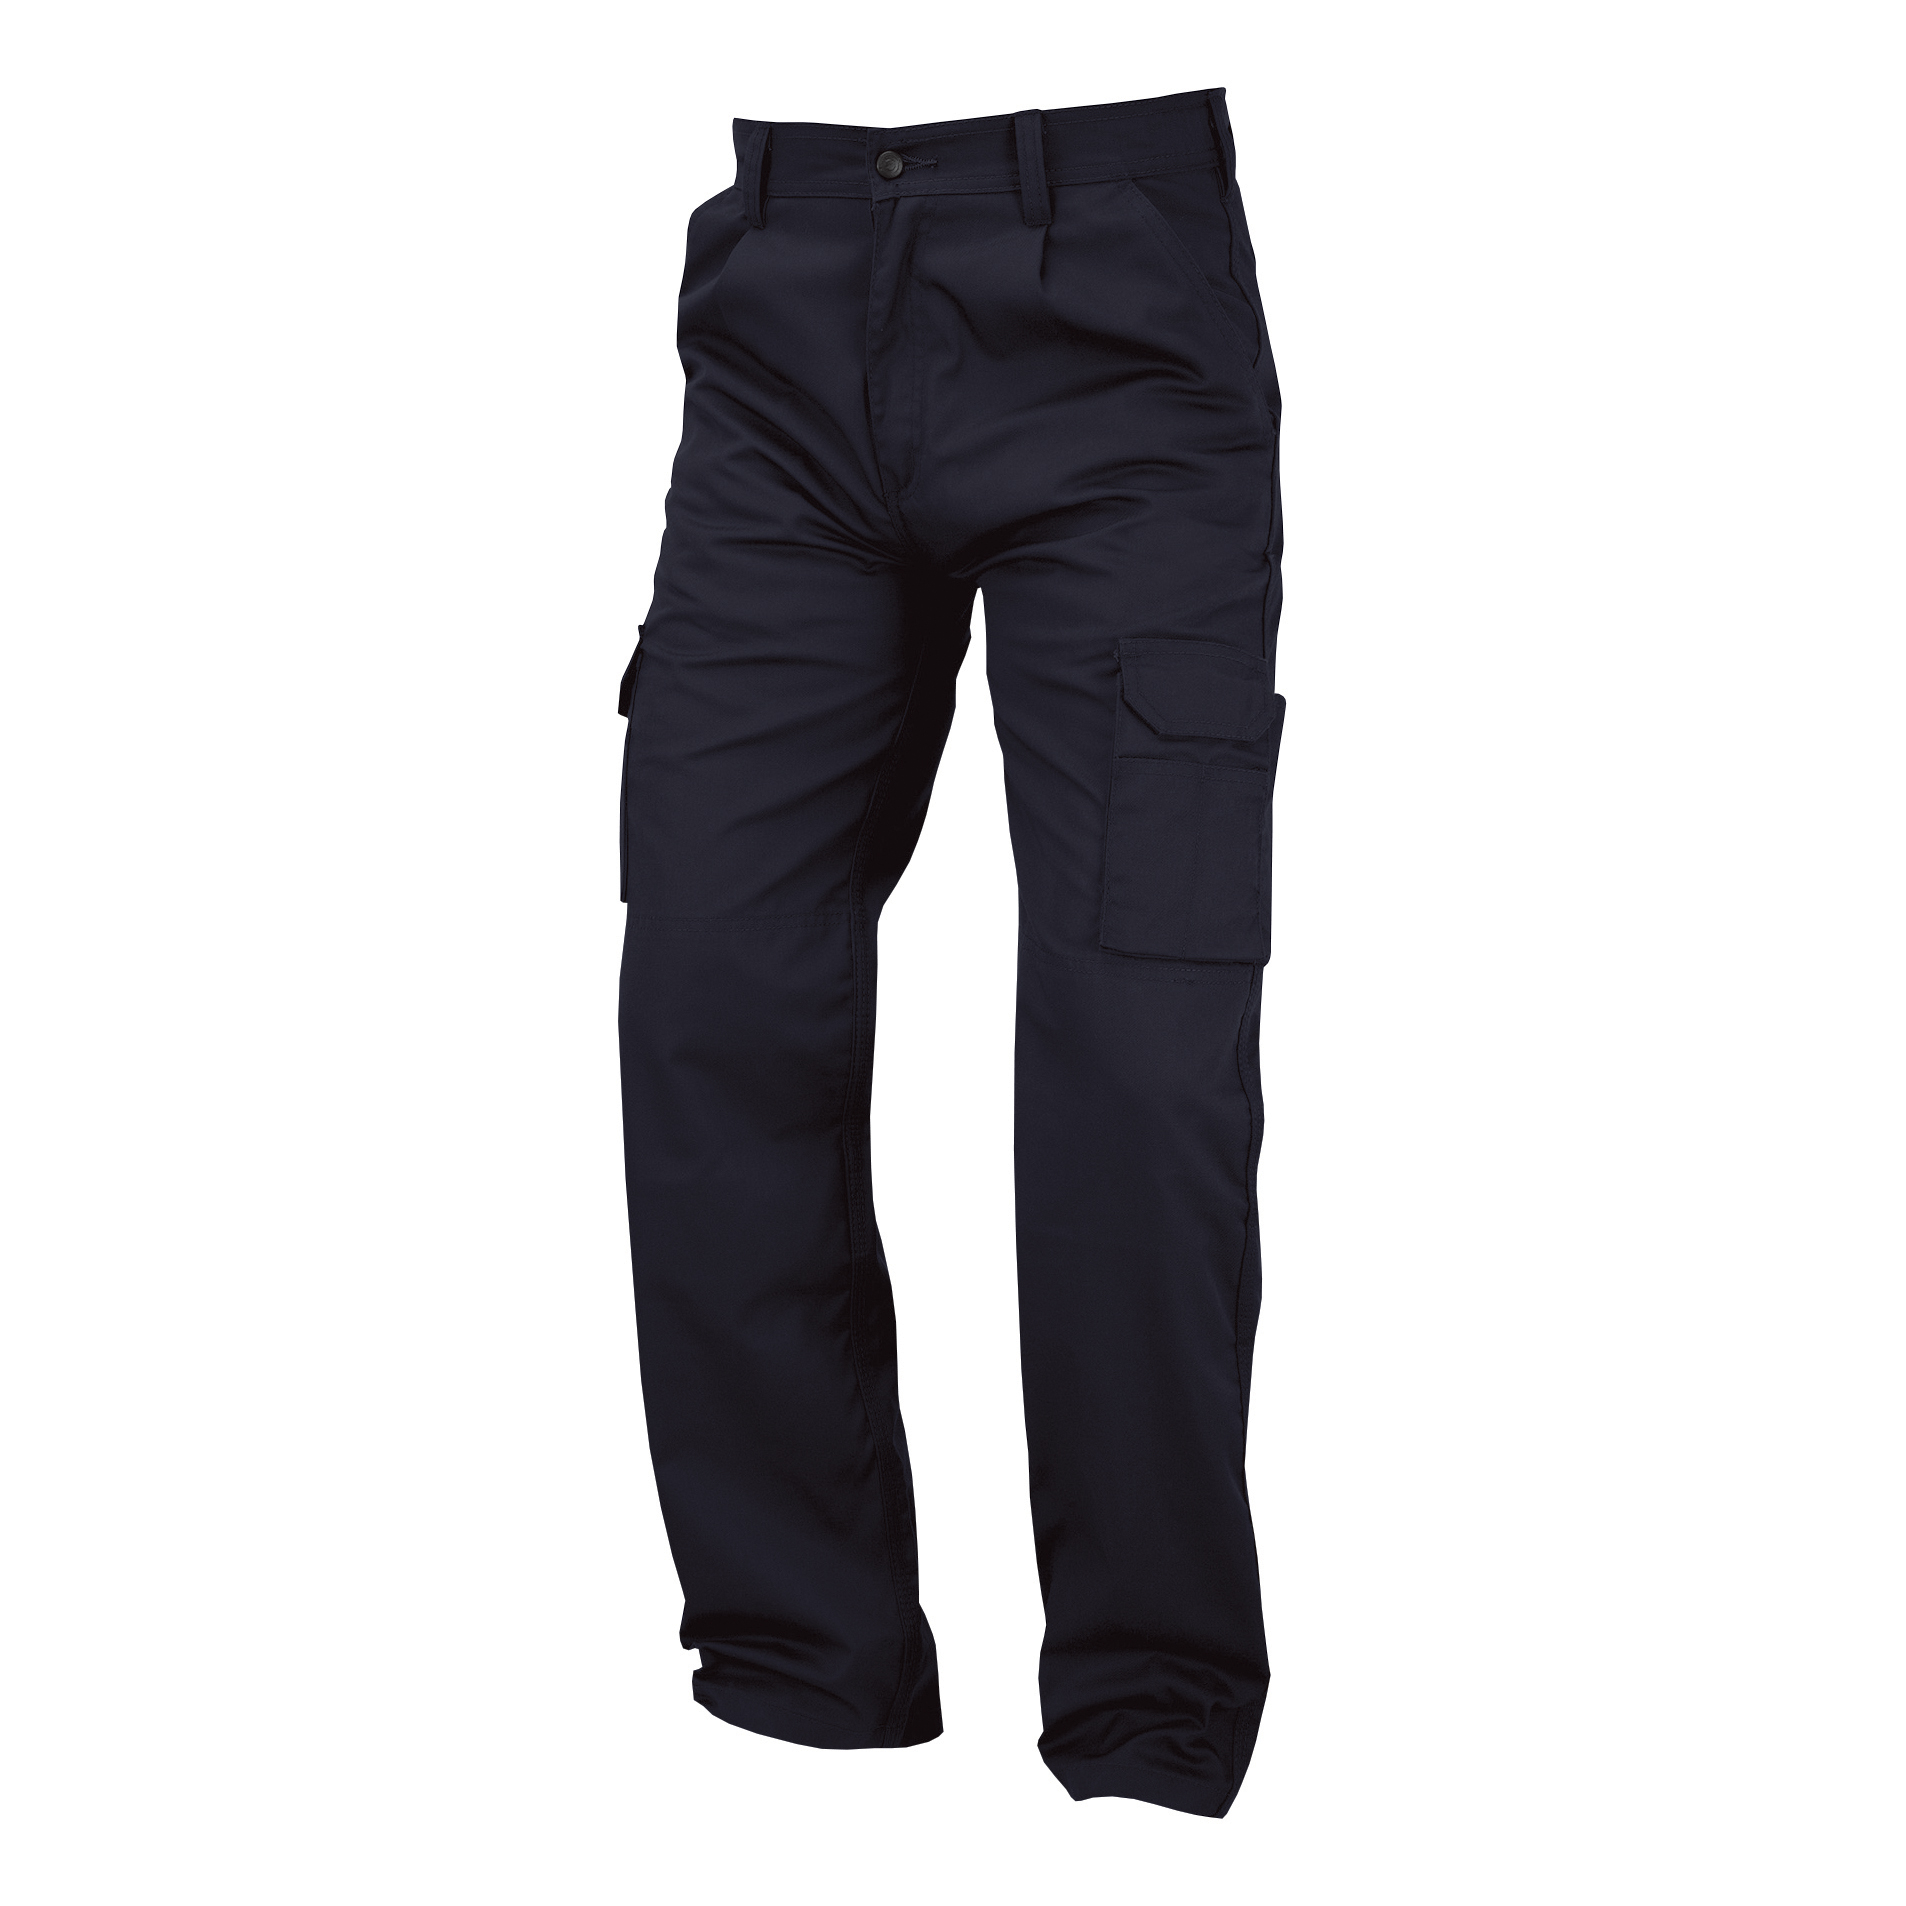 Combat Trousers Polycotton with Pockets Regular Navy 36inch 1-3 Days Lead Time